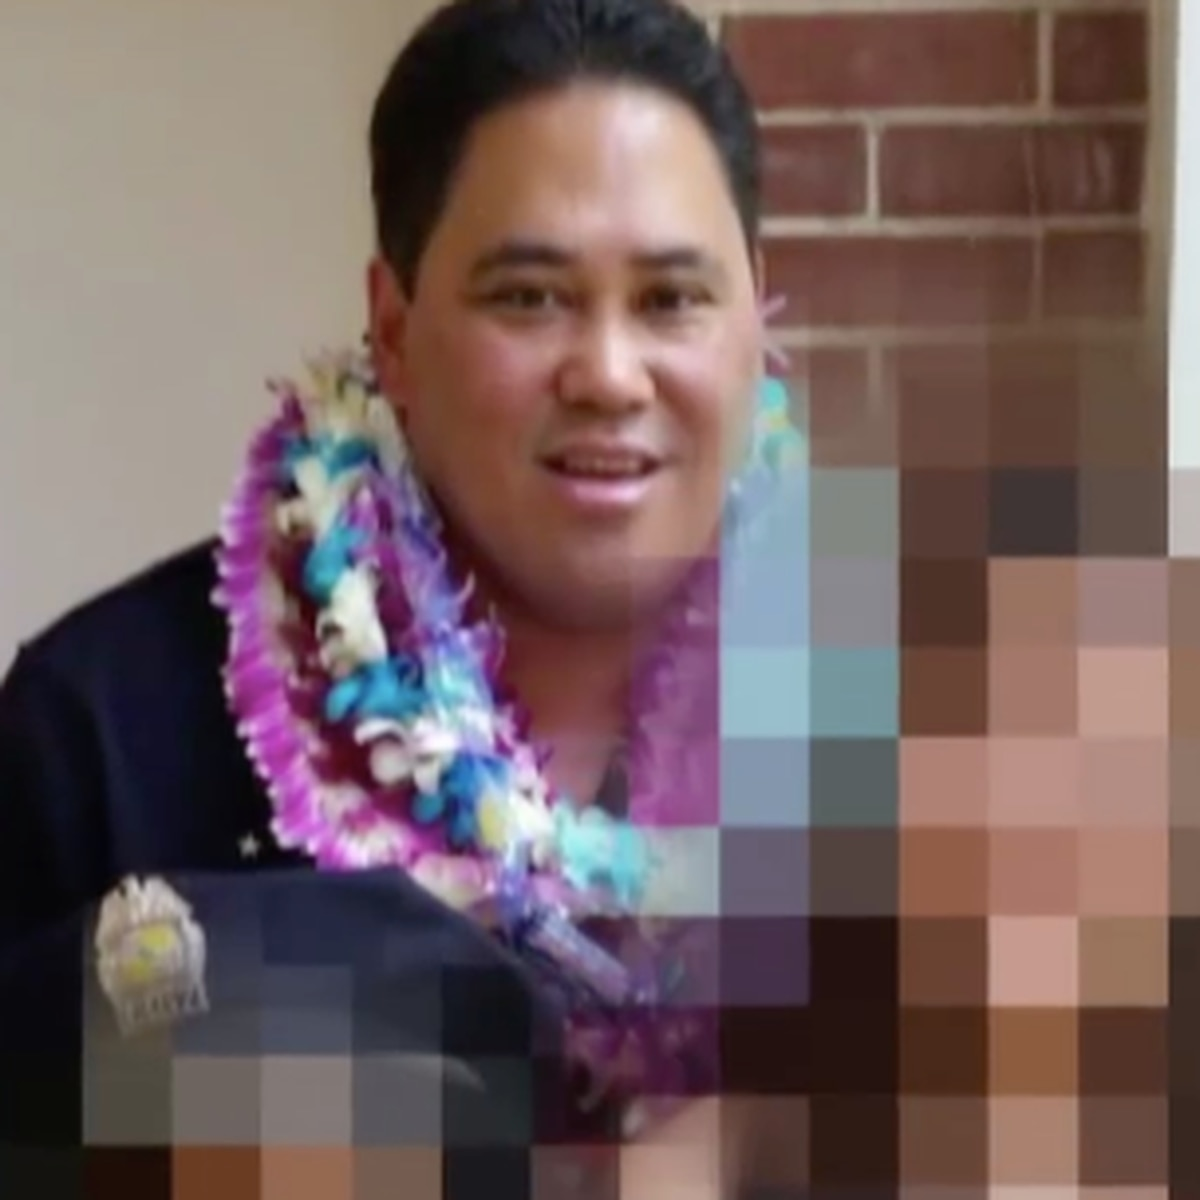 Honolulu police officer with troubled past charged for felony abuse